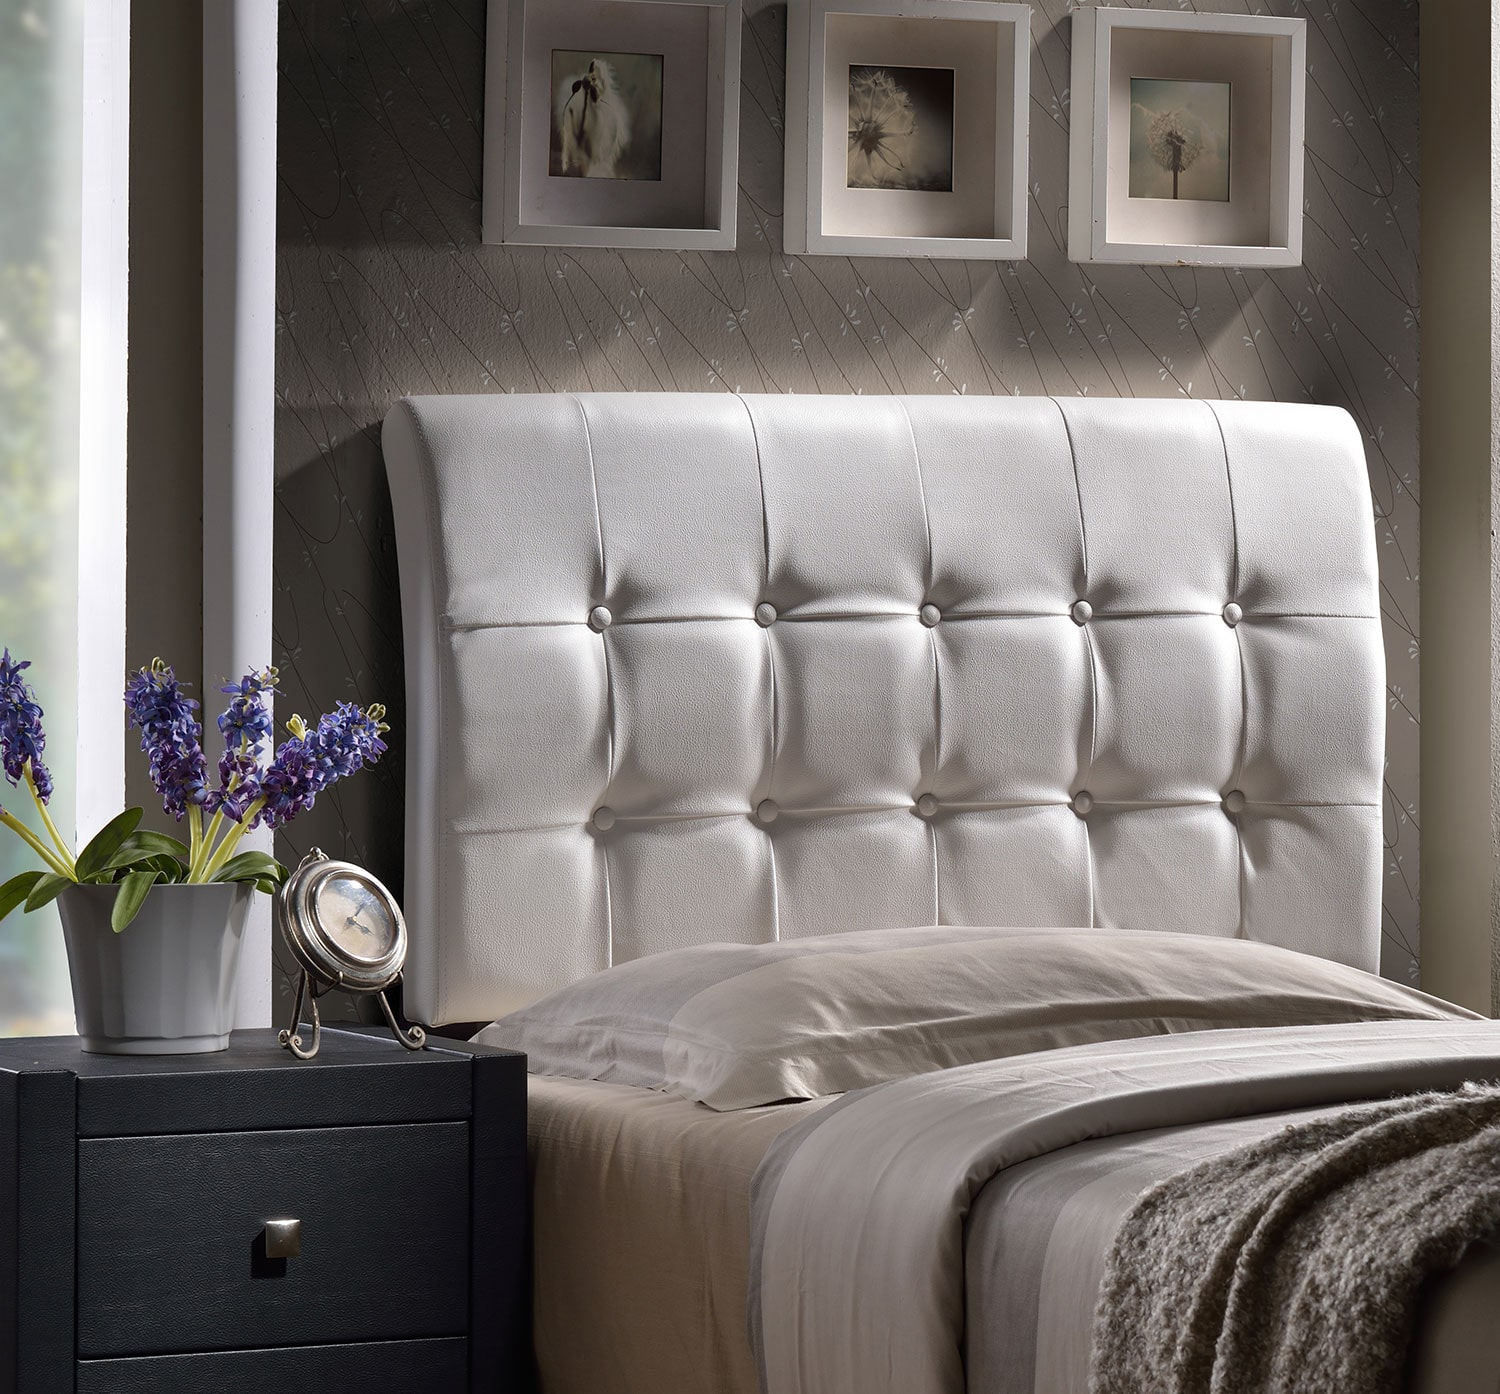 Bedroom Furniture - Lusso King Headboard - White